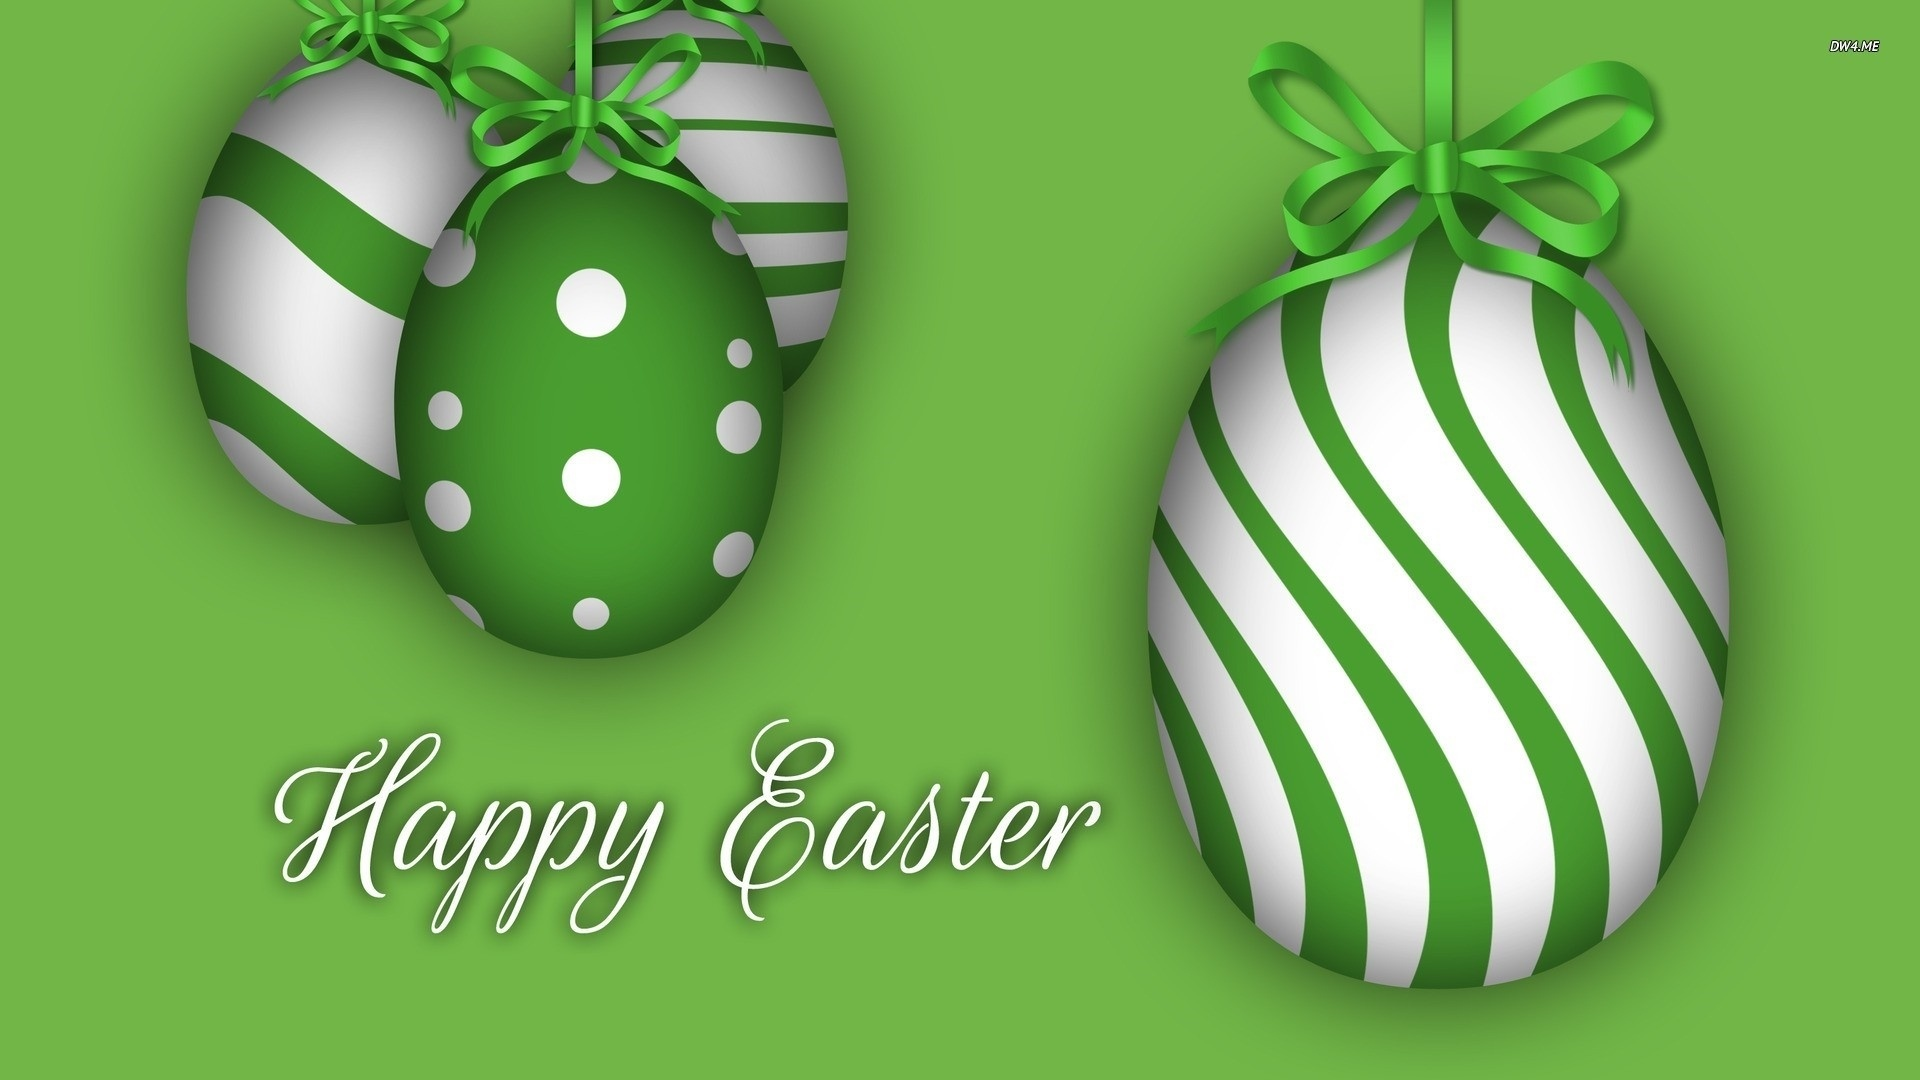 Happy Easter wallpaper for pc